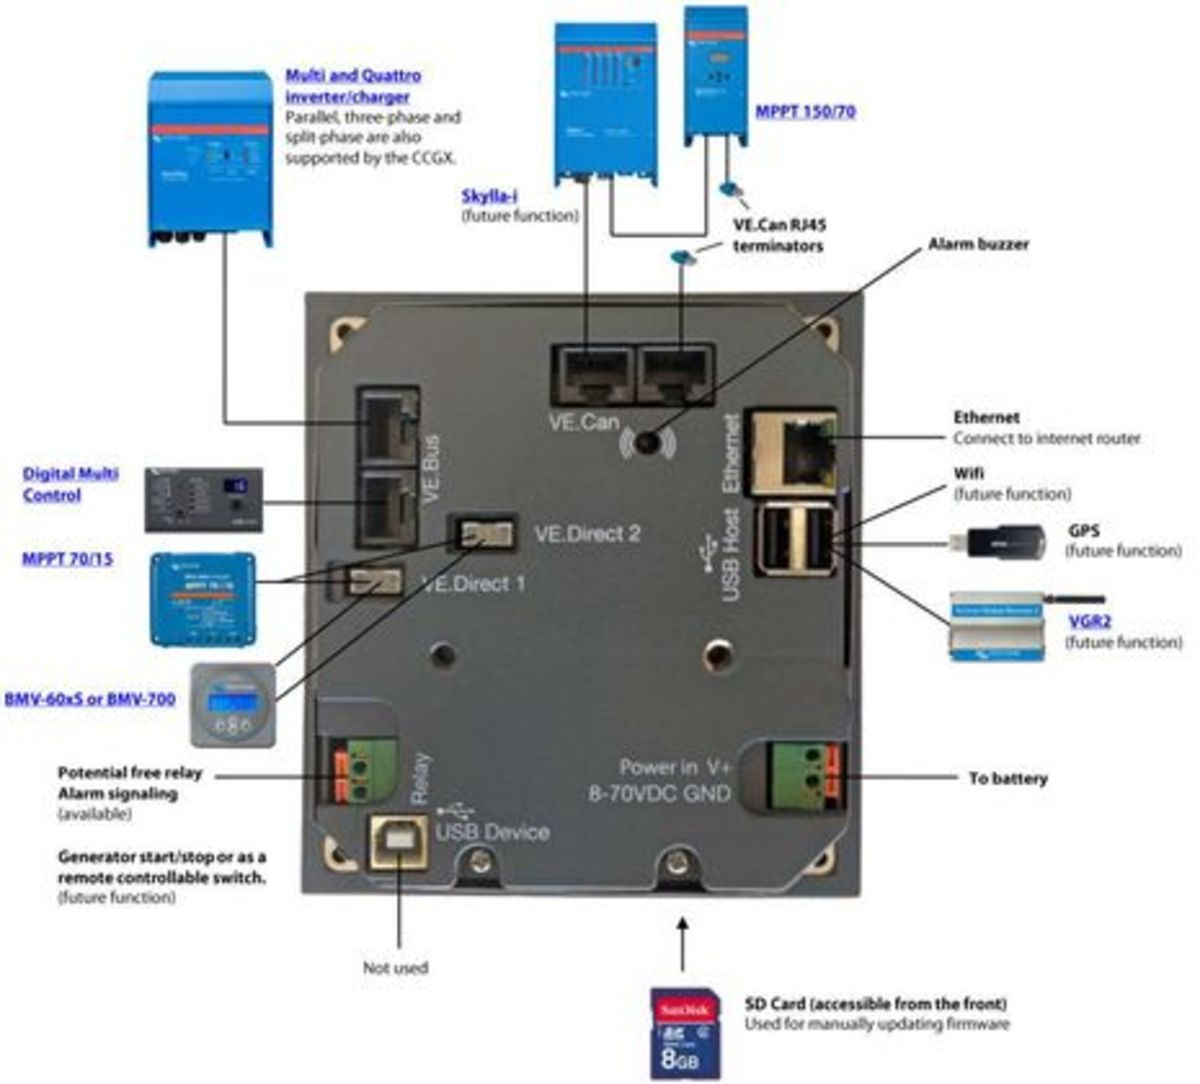 Victron_color_control_GX_system_diagram.jpg